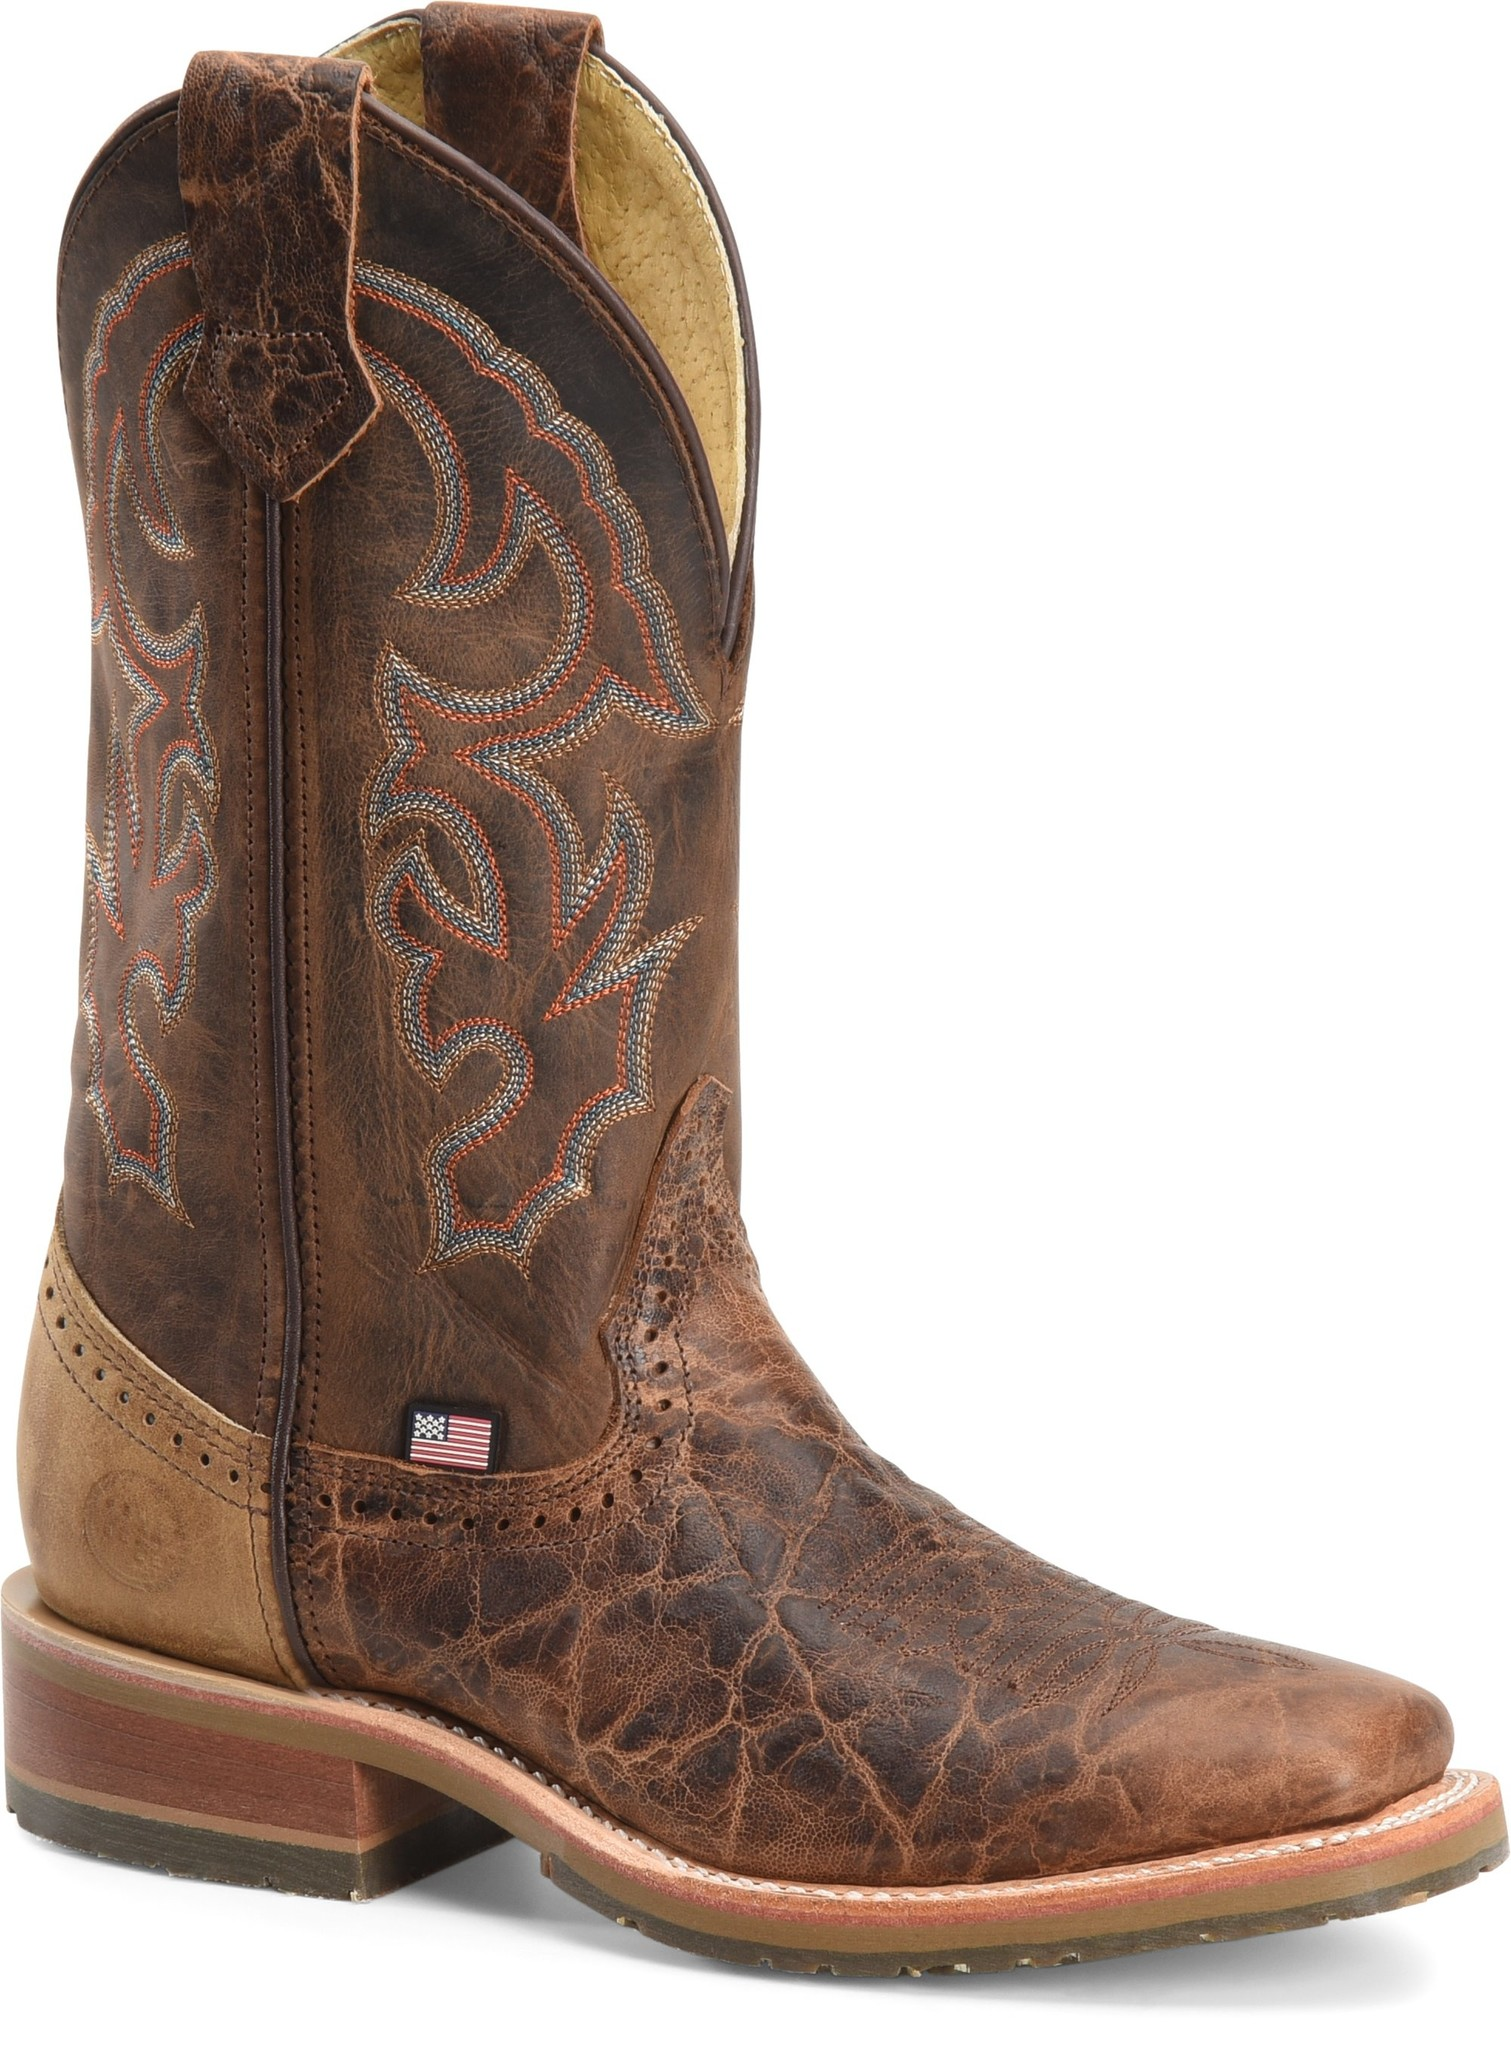 Men's Double H Harshaw DH4645